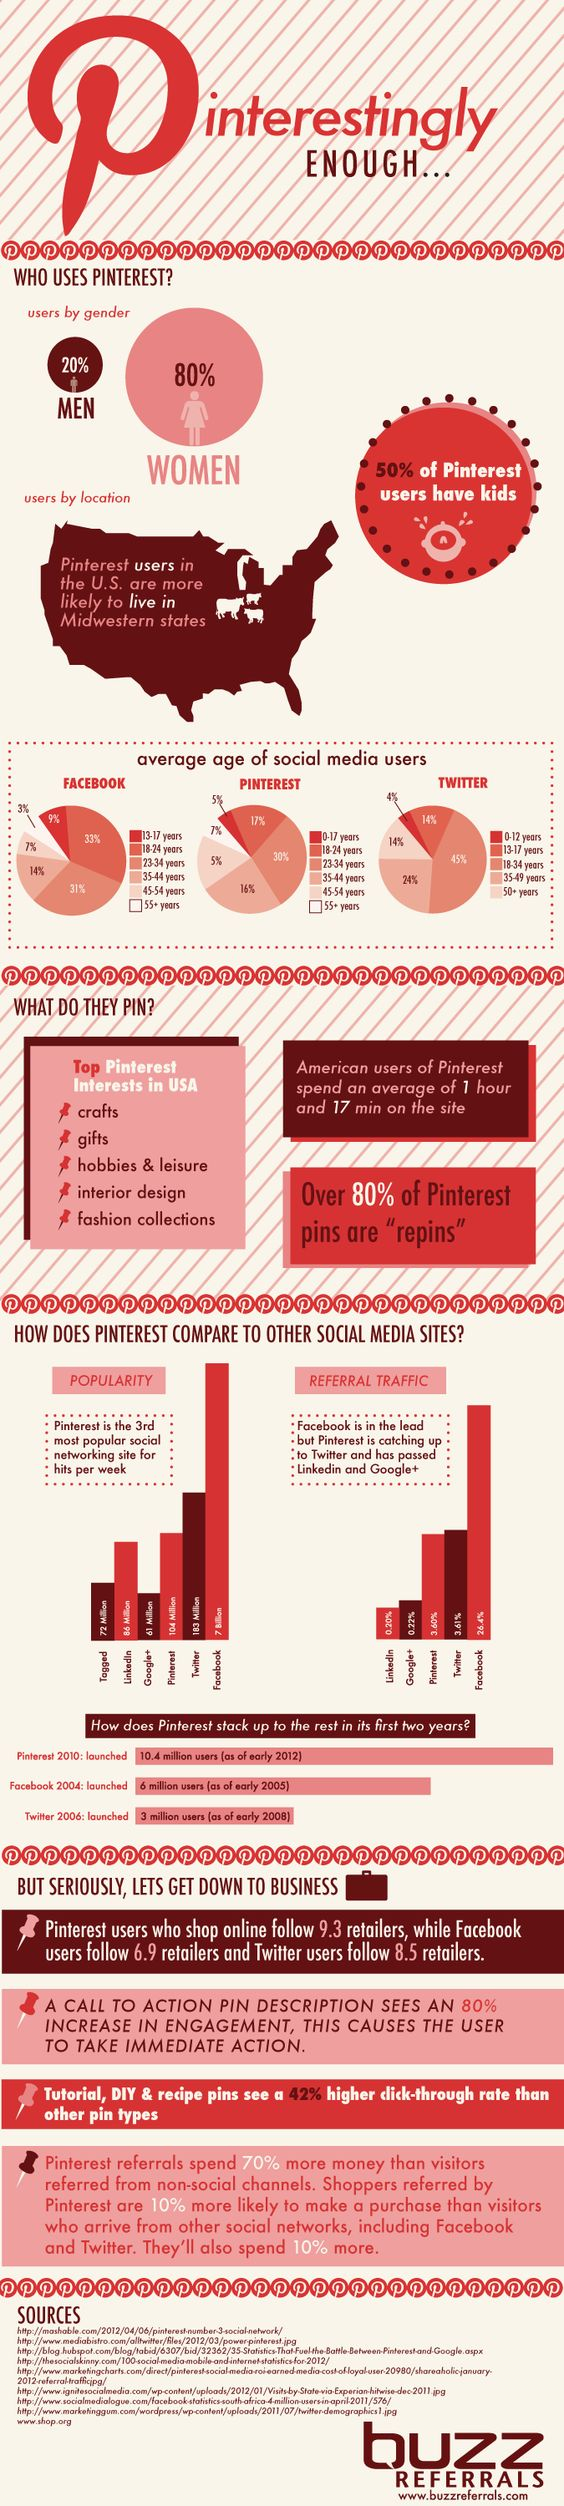 What's the Interest with Pinterest? (an infographic)